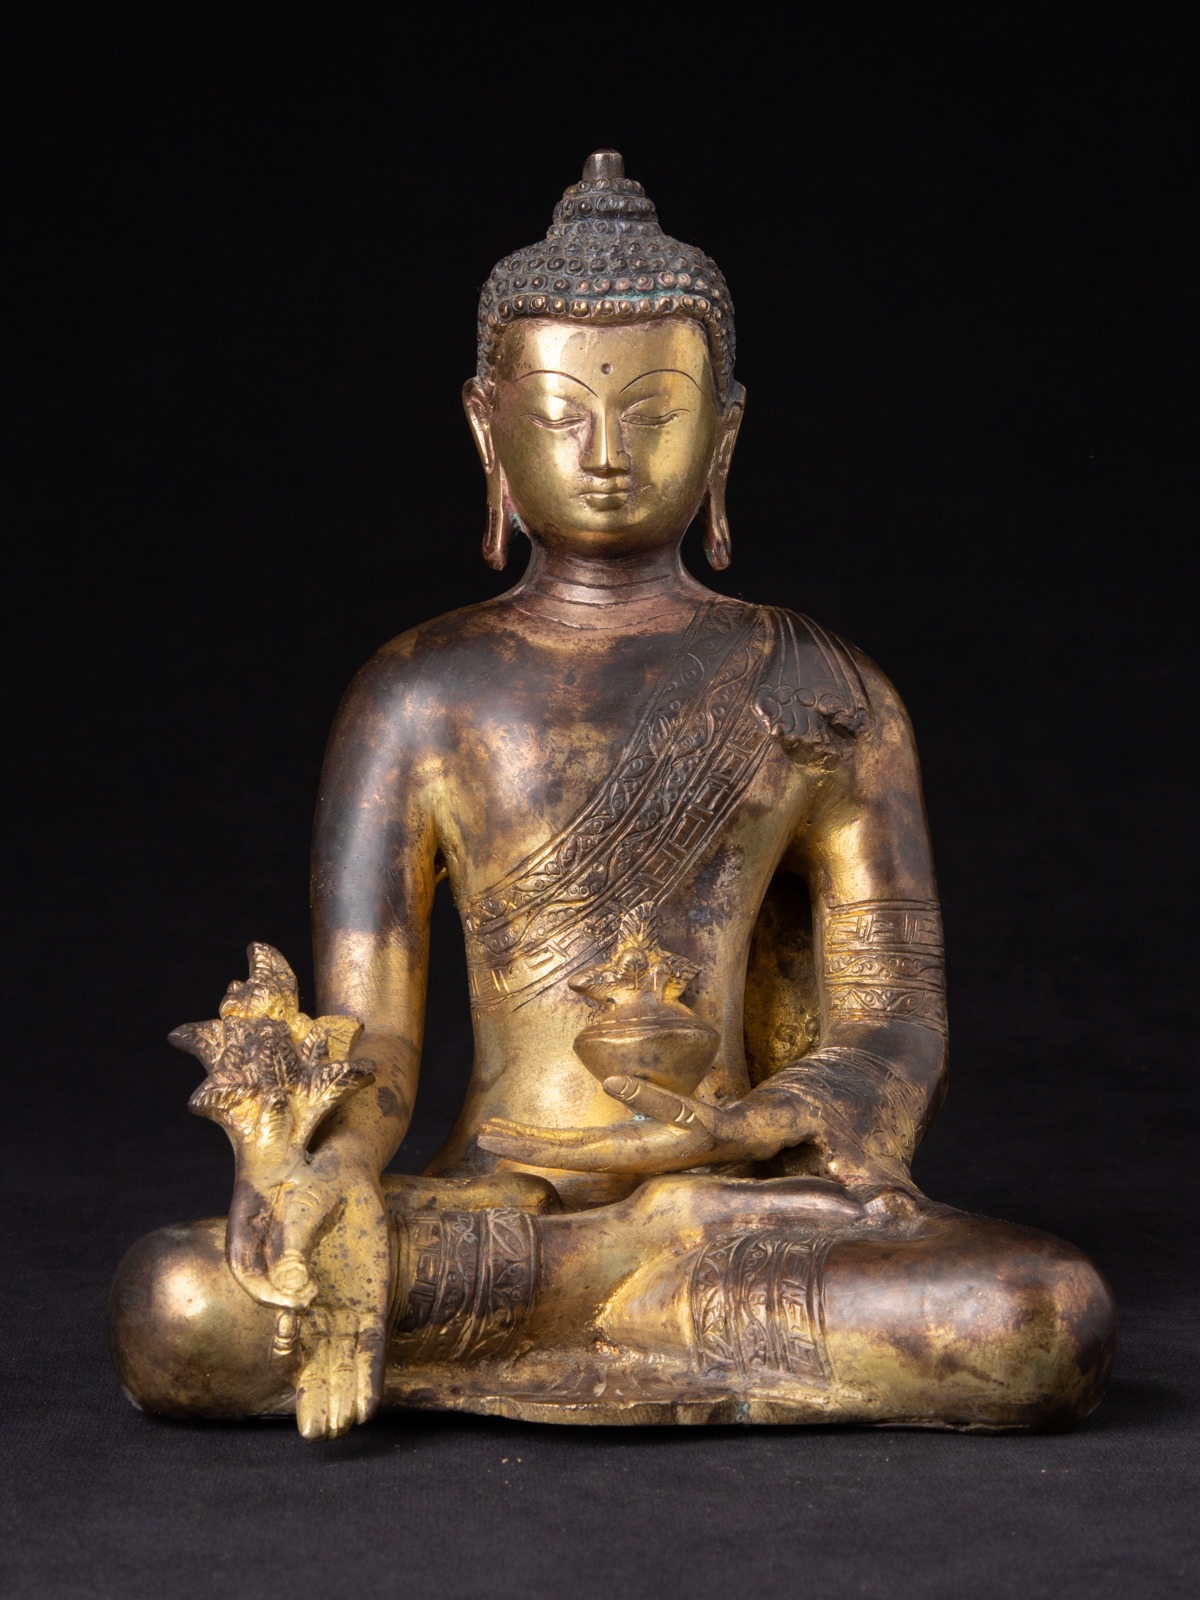 Bronze Medicine Buddha statue from Nepal made from Bronze